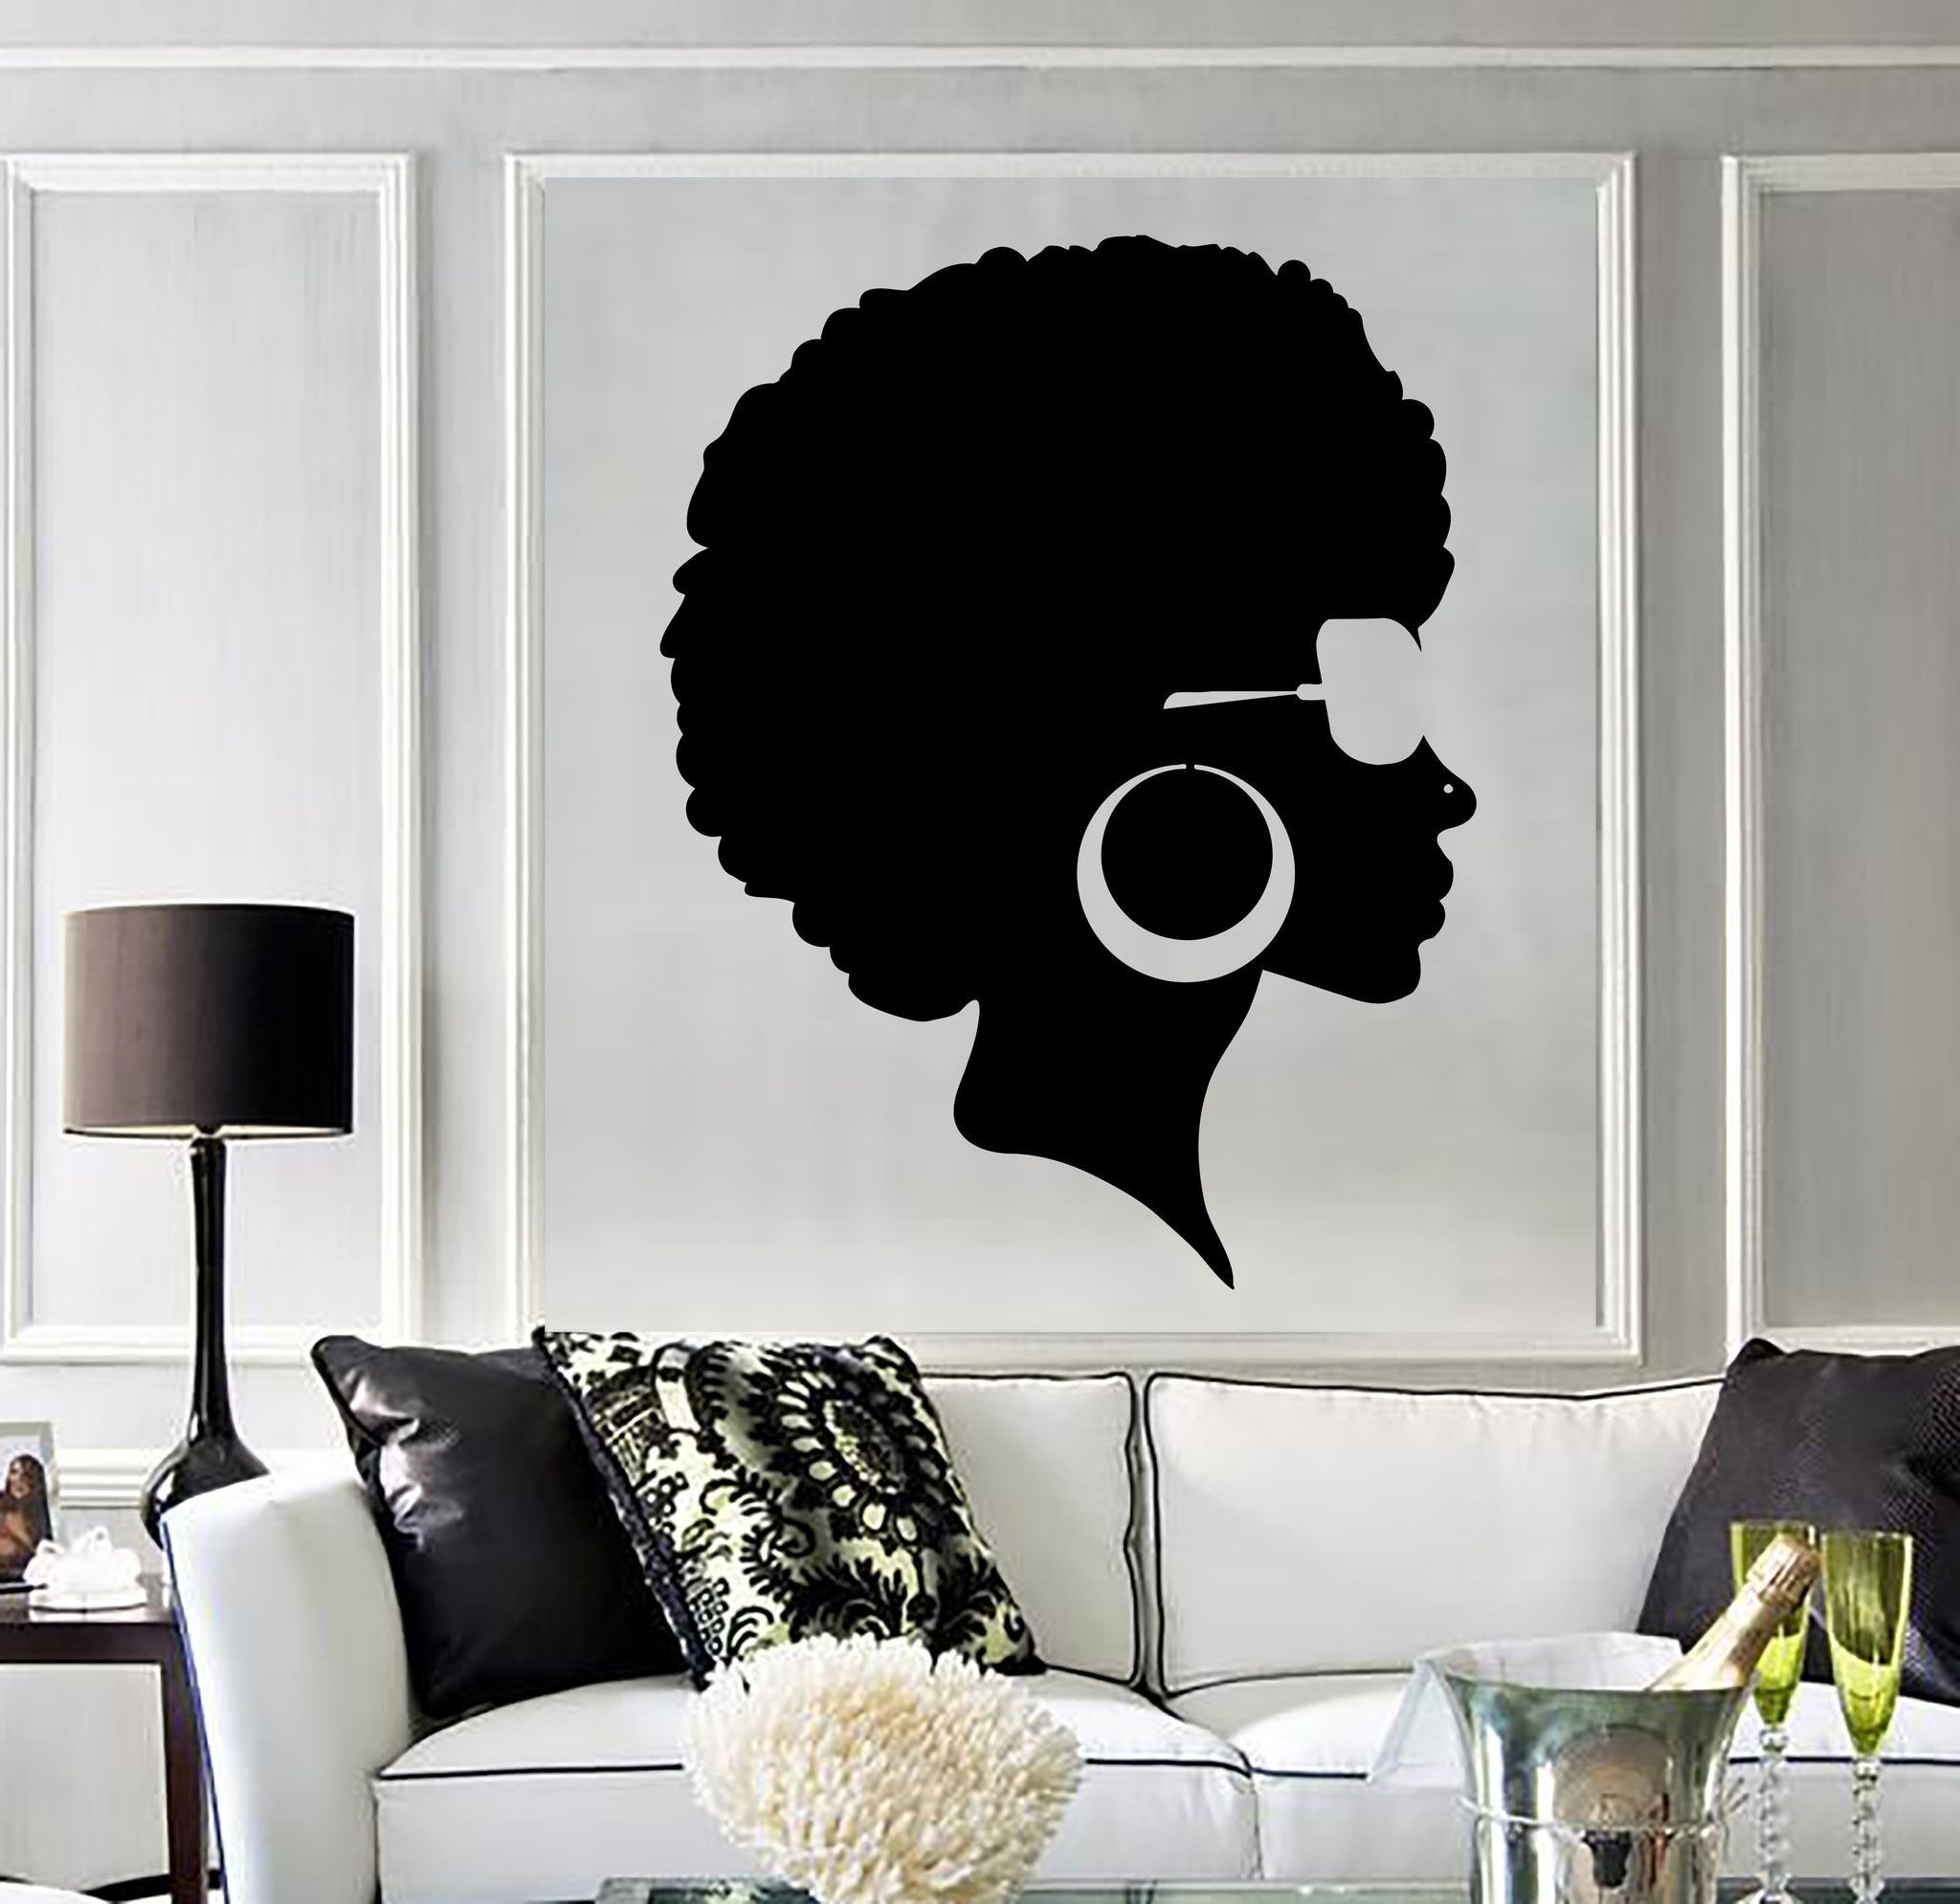 Vinyl wall decal afro hairstyle black lady beauty salon stickers vinyl wall decal afro hairstyle black lady beauty salon stickers mural ig3803 amipublicfo Gallery